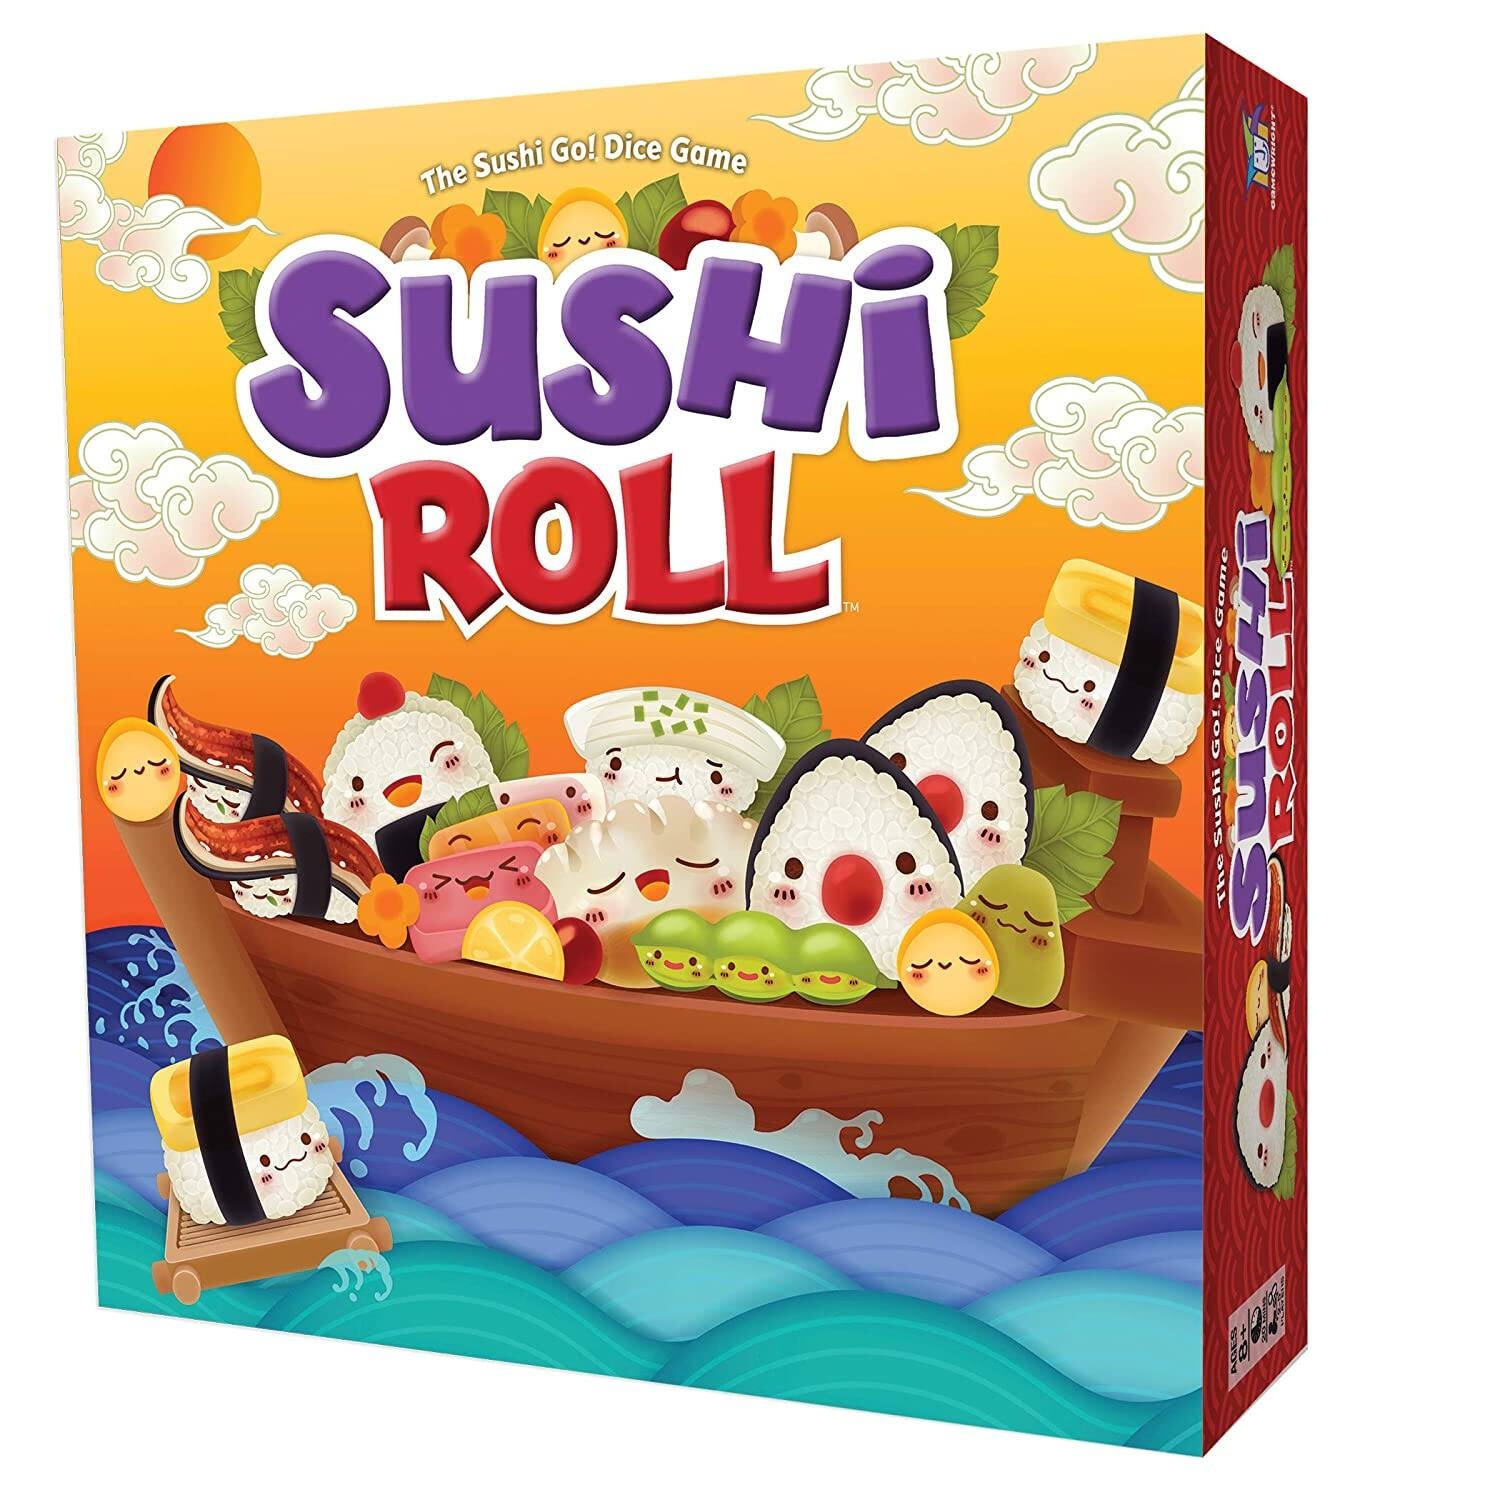 Sushi Roll - The Sushi Go! Dice Game $13.58 + Free Shipping w/ Prime or FSSS